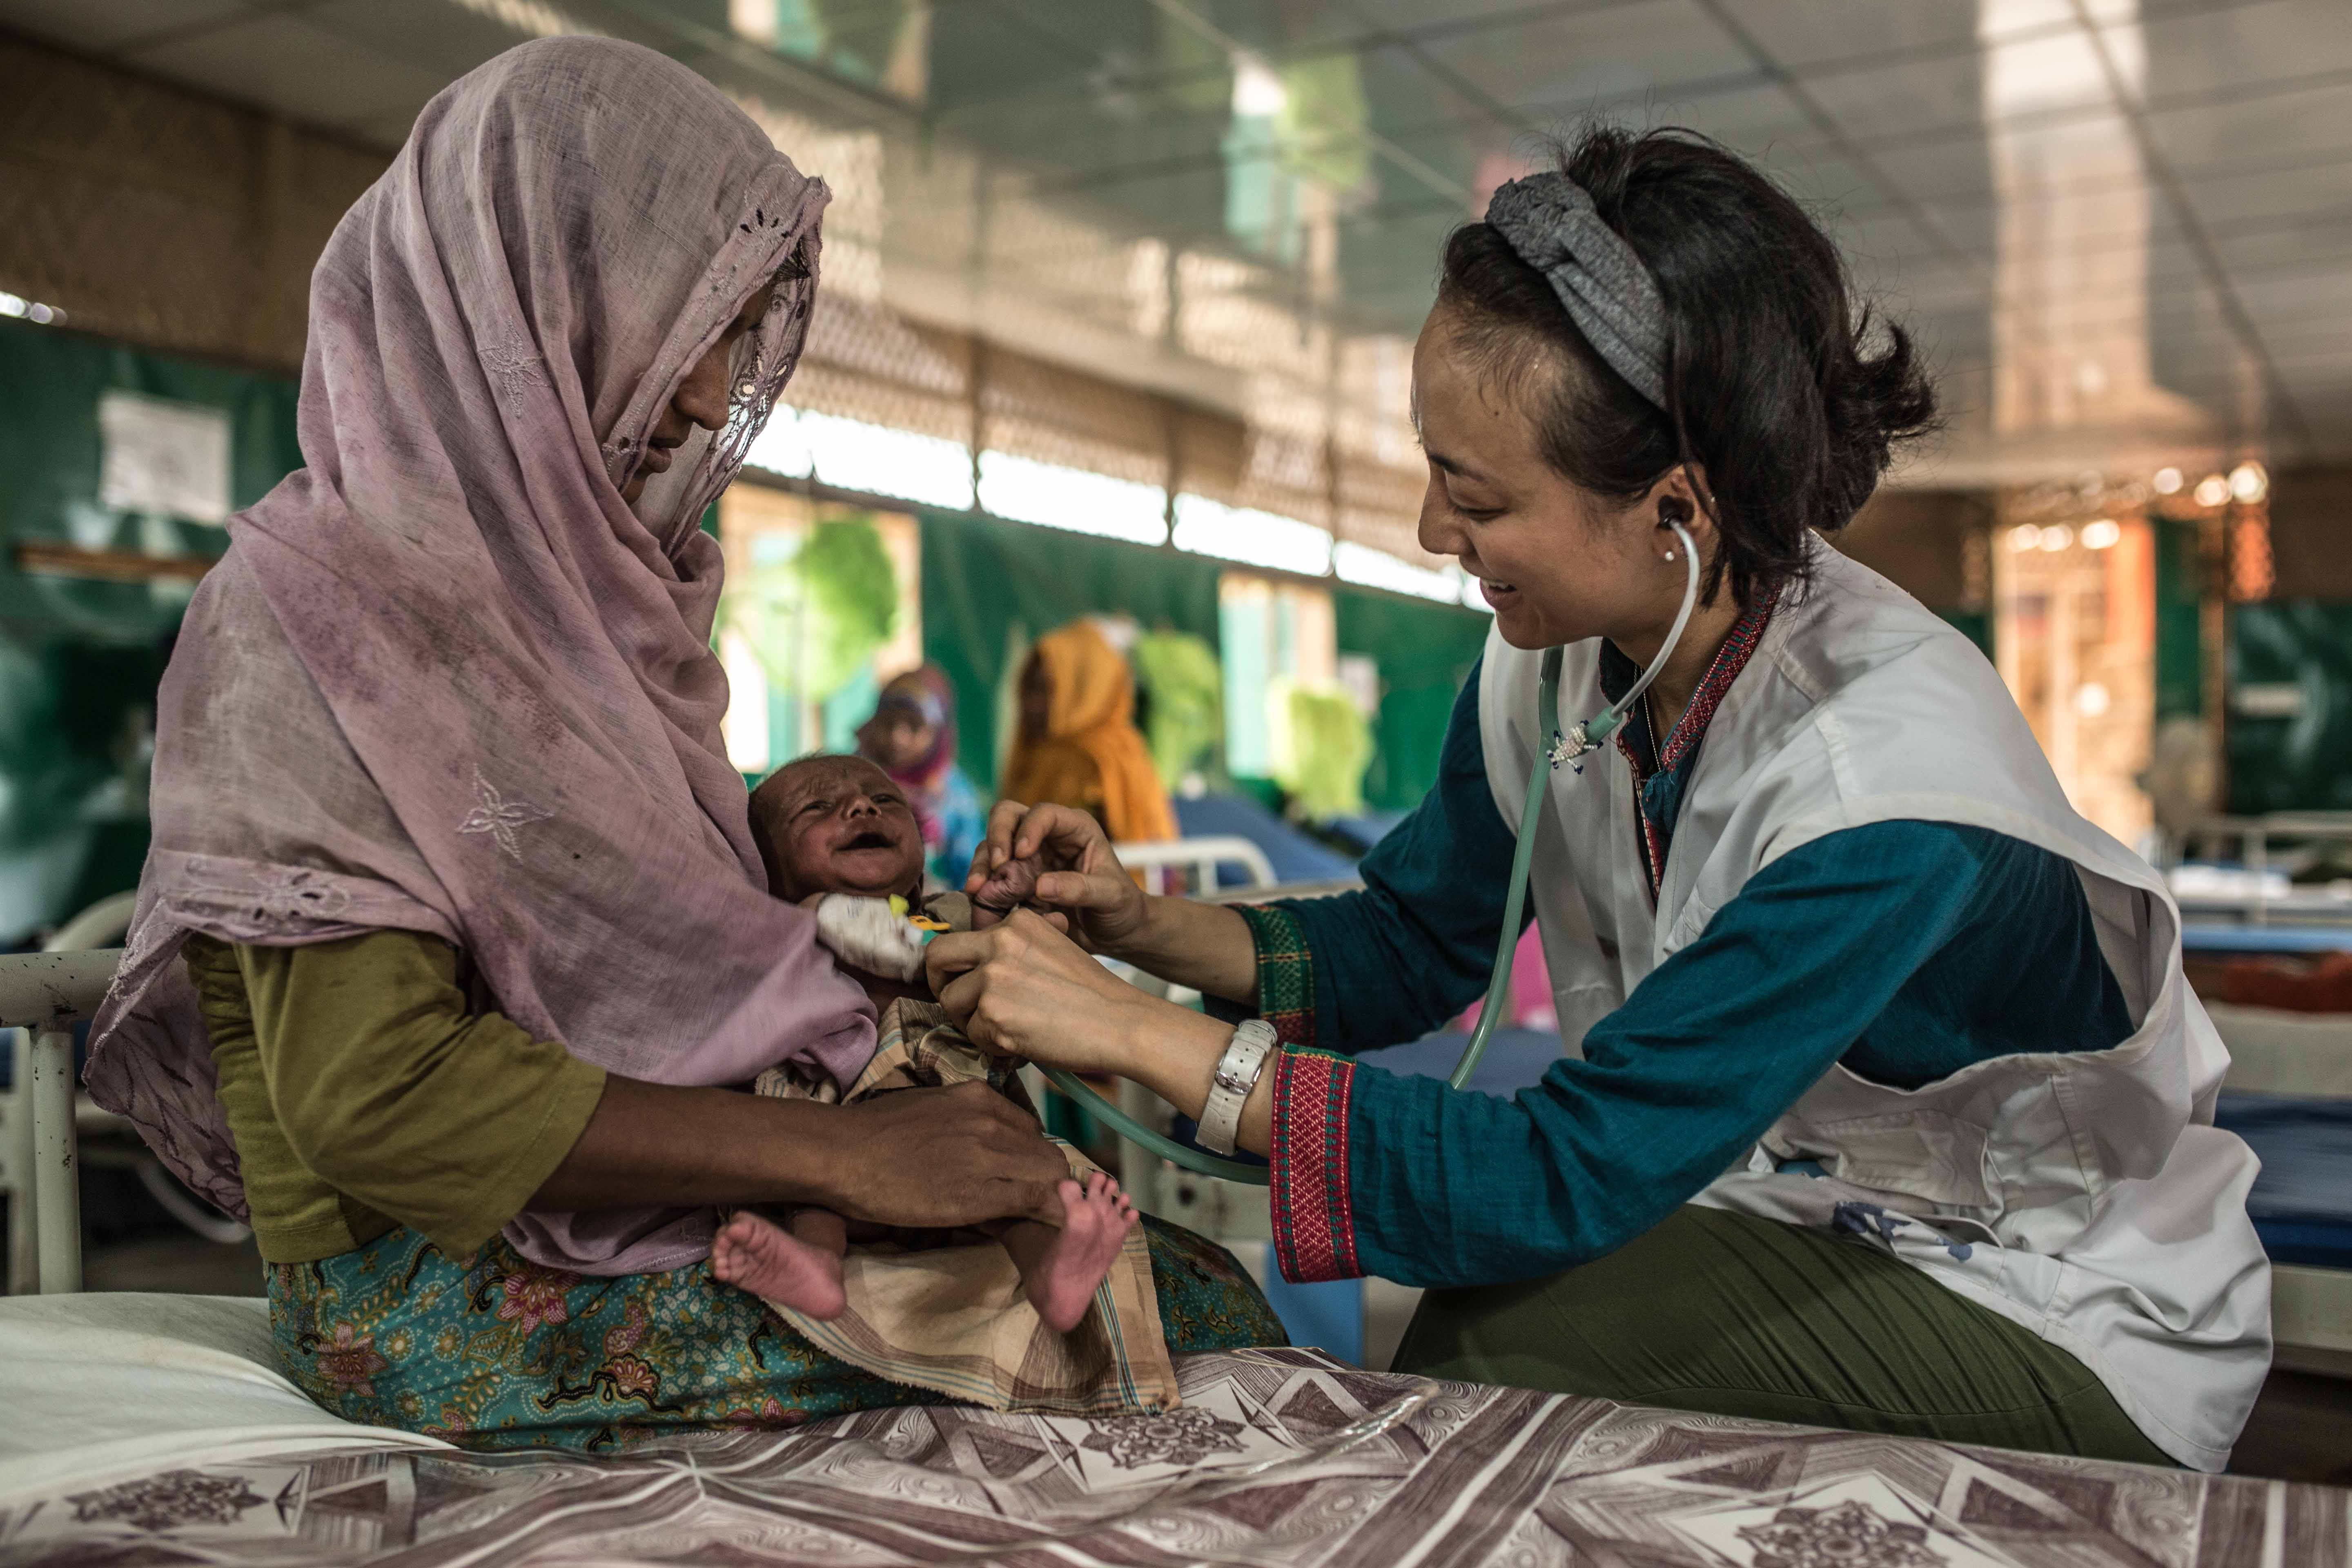 © Pablo Tosco/Angular  Rozia and her two-month-old son Zubair receive care in the MSF hospital in Goyalmara, Rohingya refugee camp in south-eastern Bangladesh.